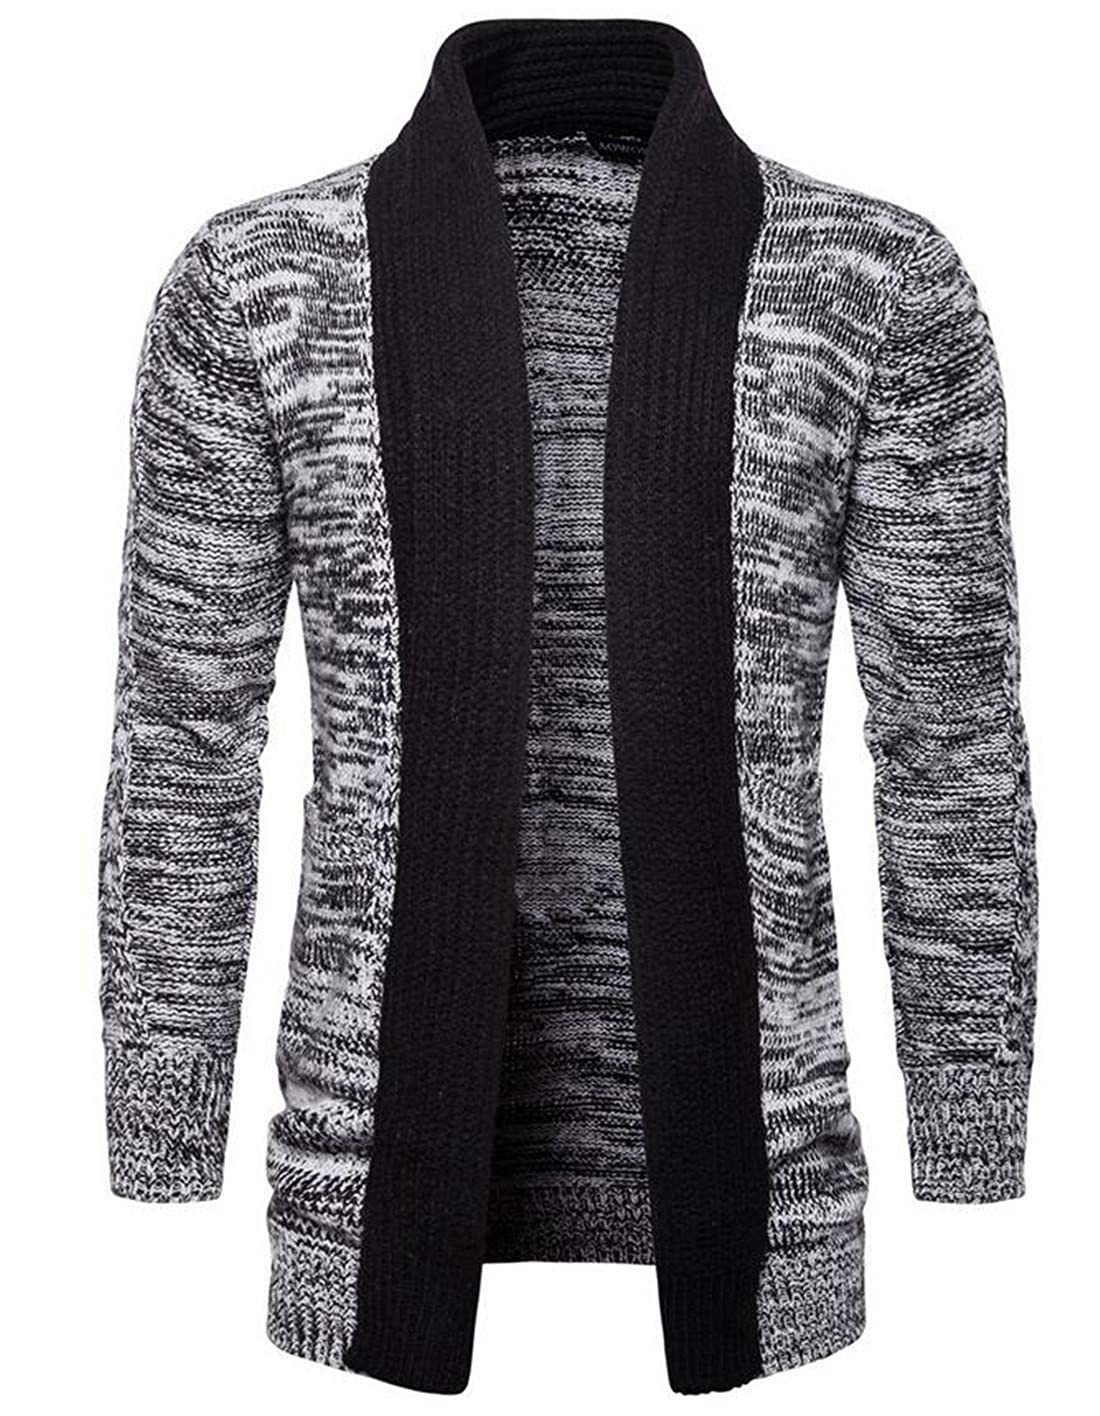 Pivaconis Mens Contrast Color Shawl Collar Open Front Knitted Sweater Cardigan